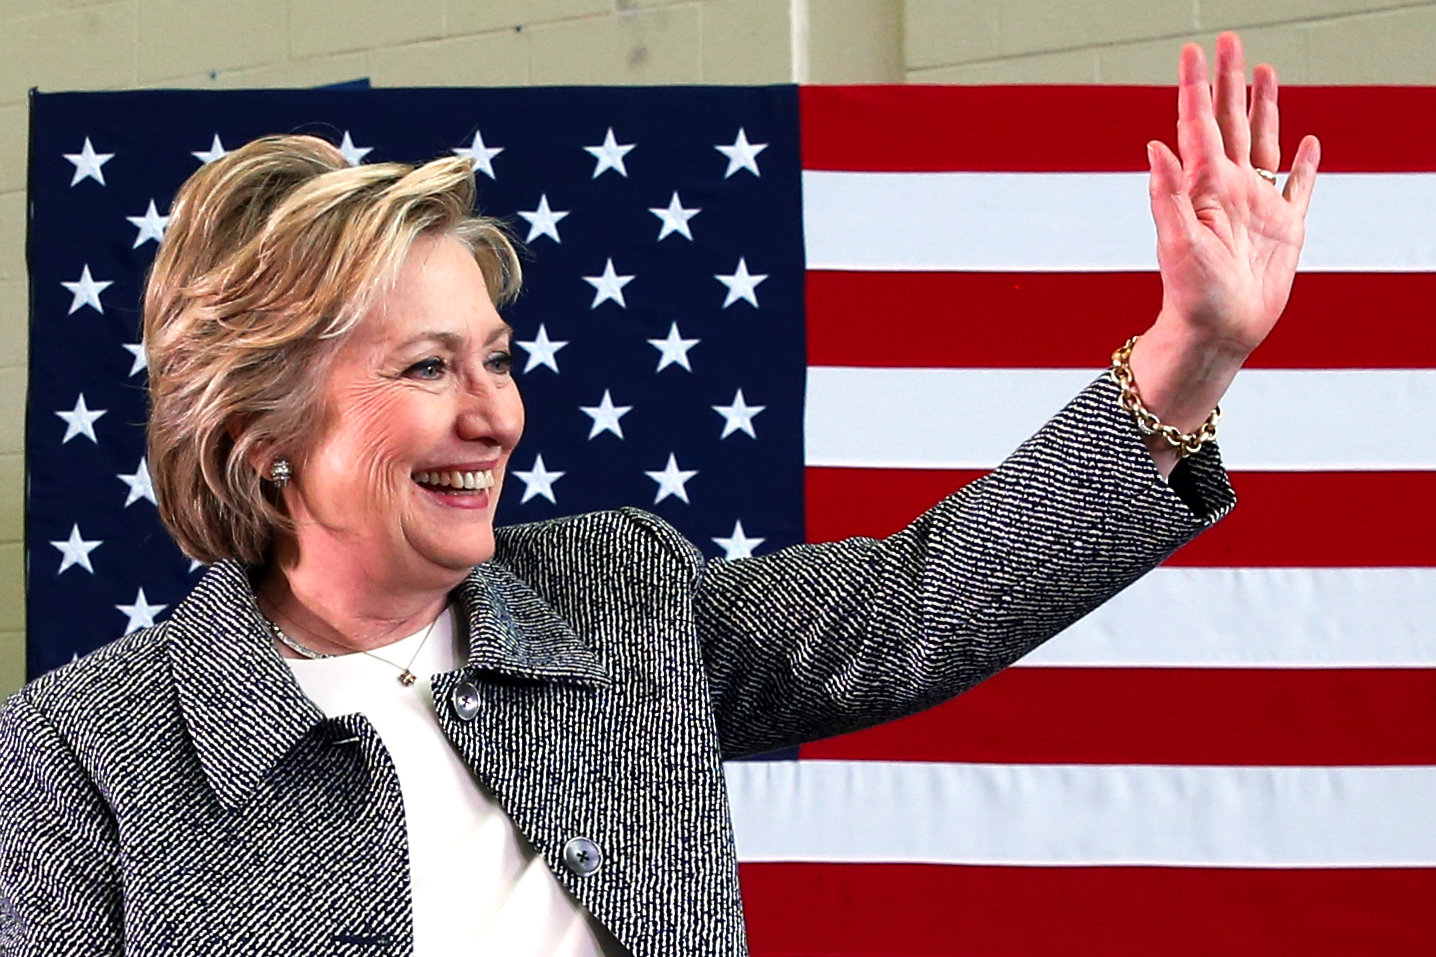 U.S. Democratic presidential candidate Hillary Clinton waves after leading a discussion on gun violence prevention in Hartford, Connecticut